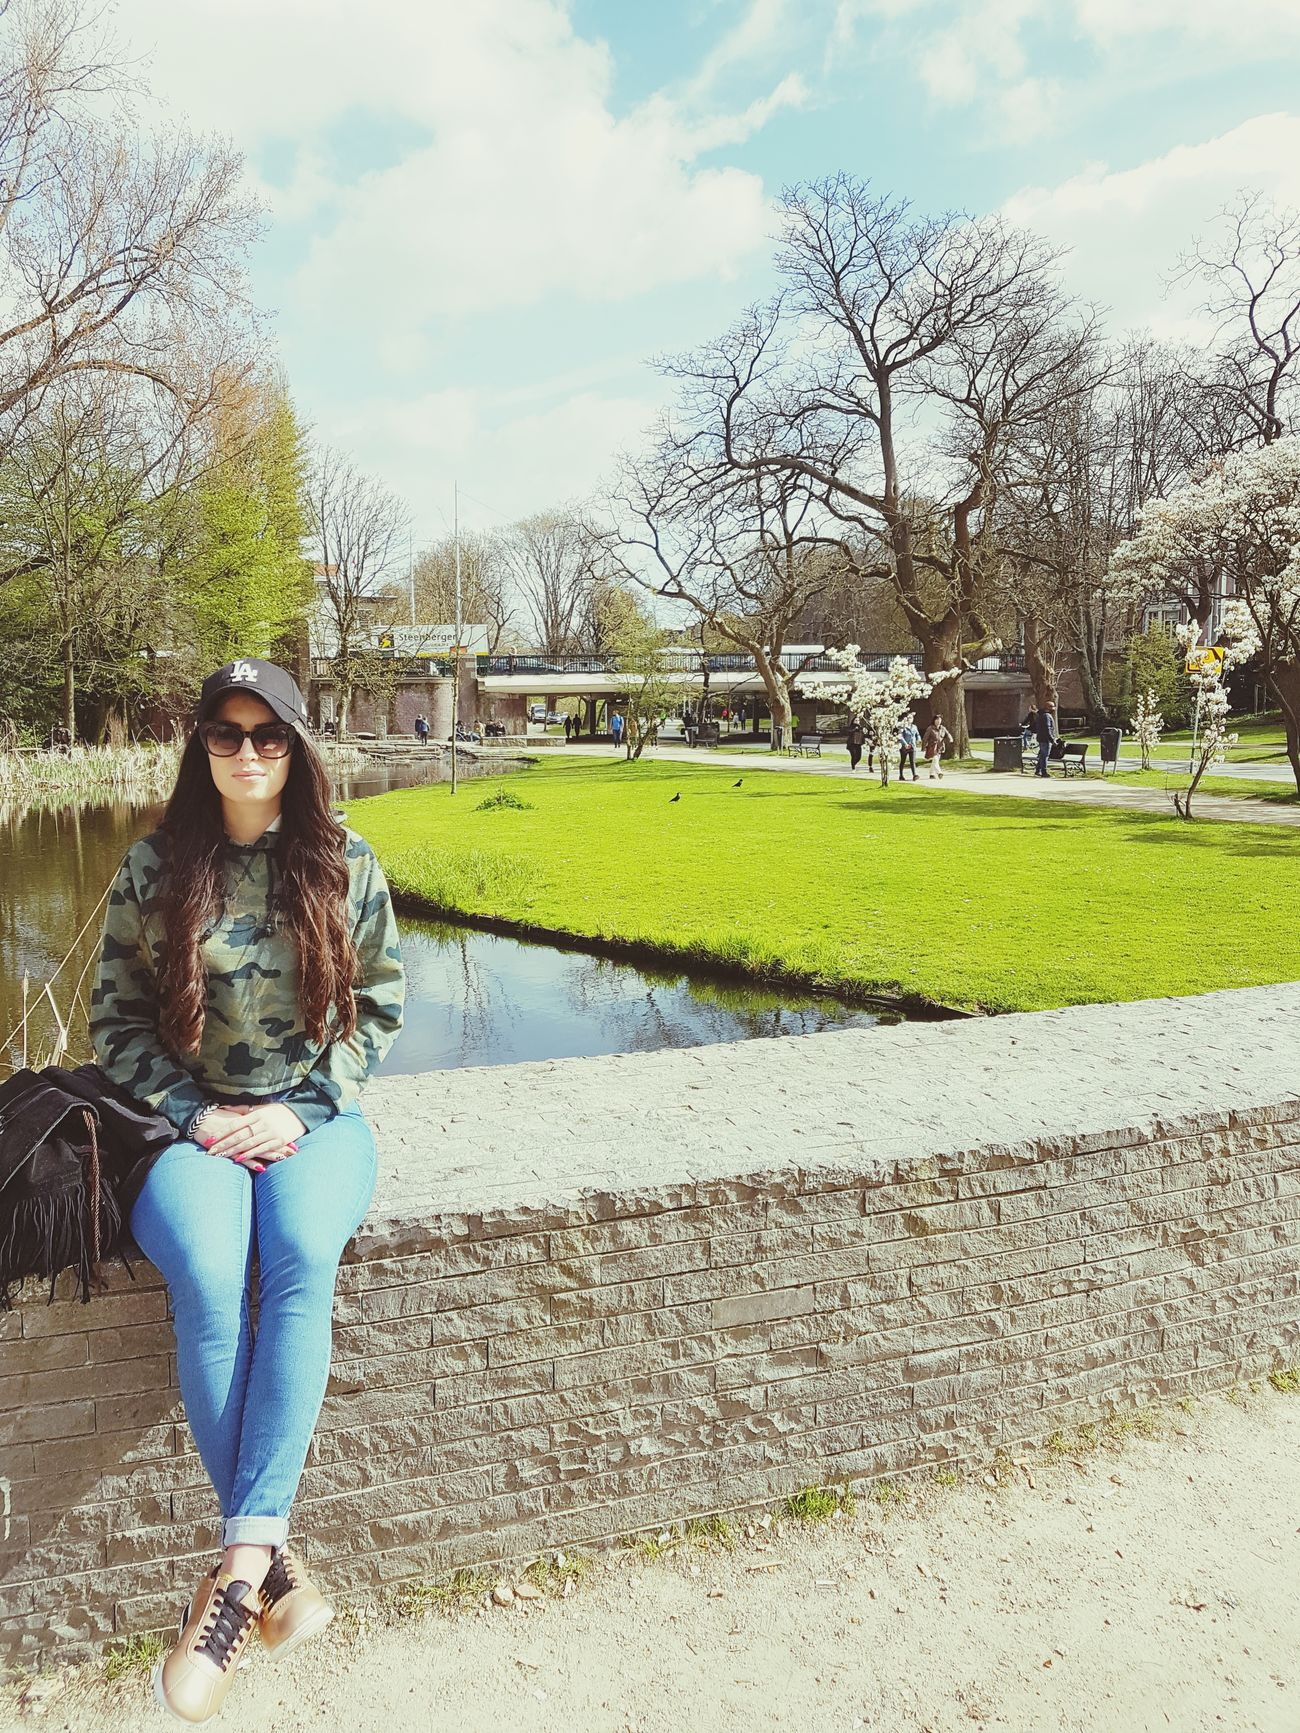 Amsterdam Vondelpark Sunnyday Netherlands City Break Holland Polishgirl